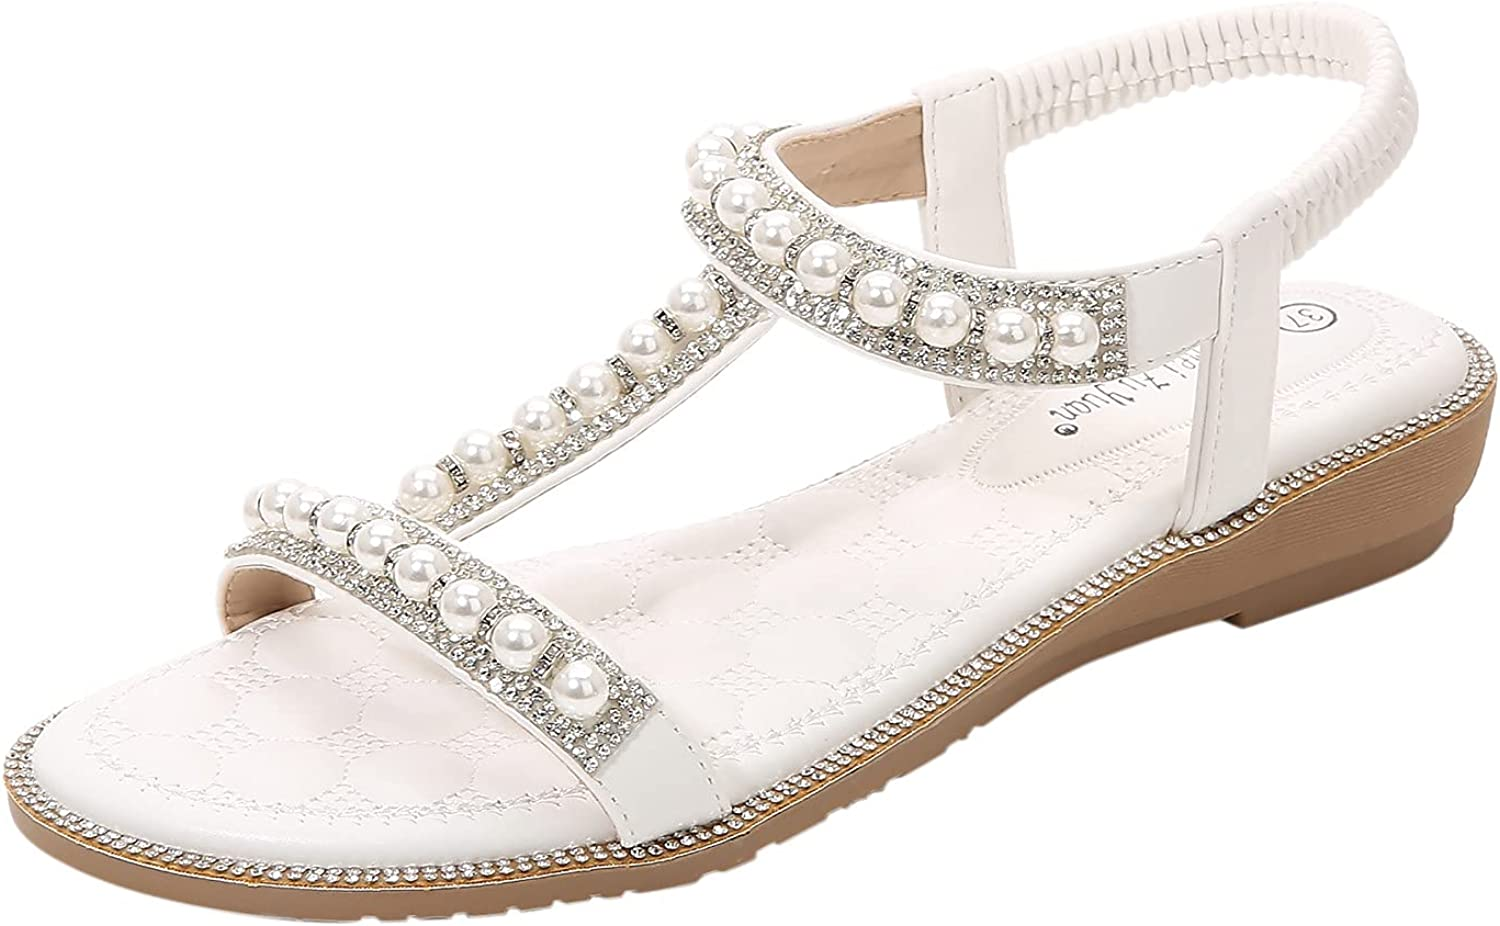 Gyouanime Sandals Wedge Beach Womens Casual New Orleans sale Mall Fashion Shoes Summer